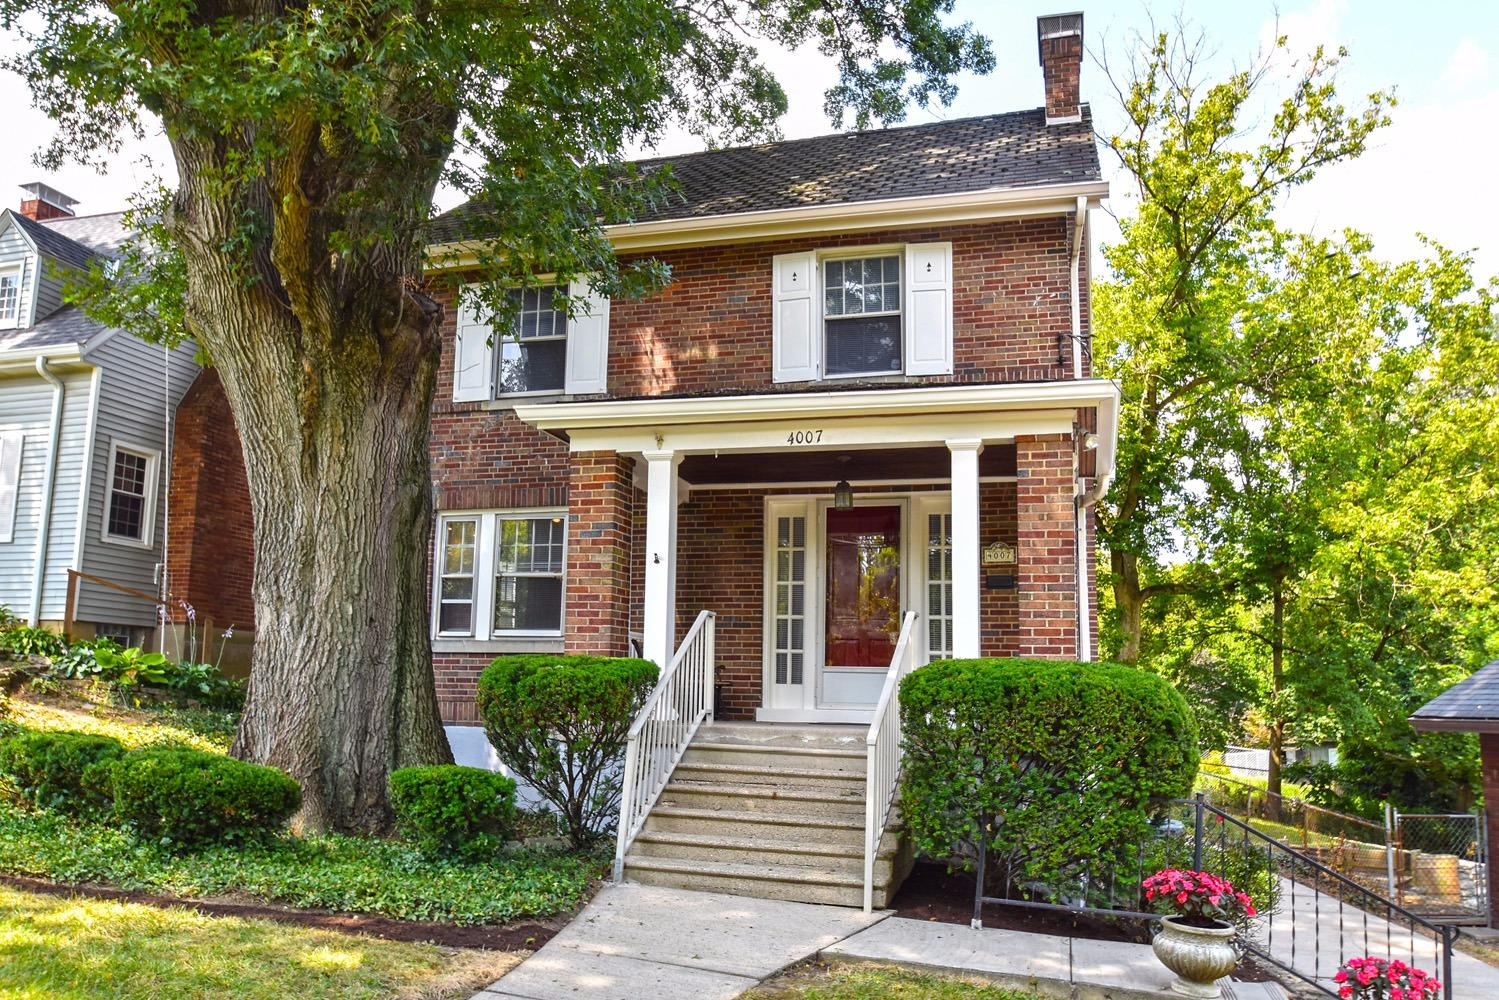 Charming, manageable brick home in Gaslight Clifton offers hardwood floors and a gas fireplace. Finished bonus room in lower level, in addition to full bath, makes an ideal guest room! Enjoy the shade on your deck provided by the new retractable awning. Convenient location near the Clifton Meadows Swim and Tennis Club!